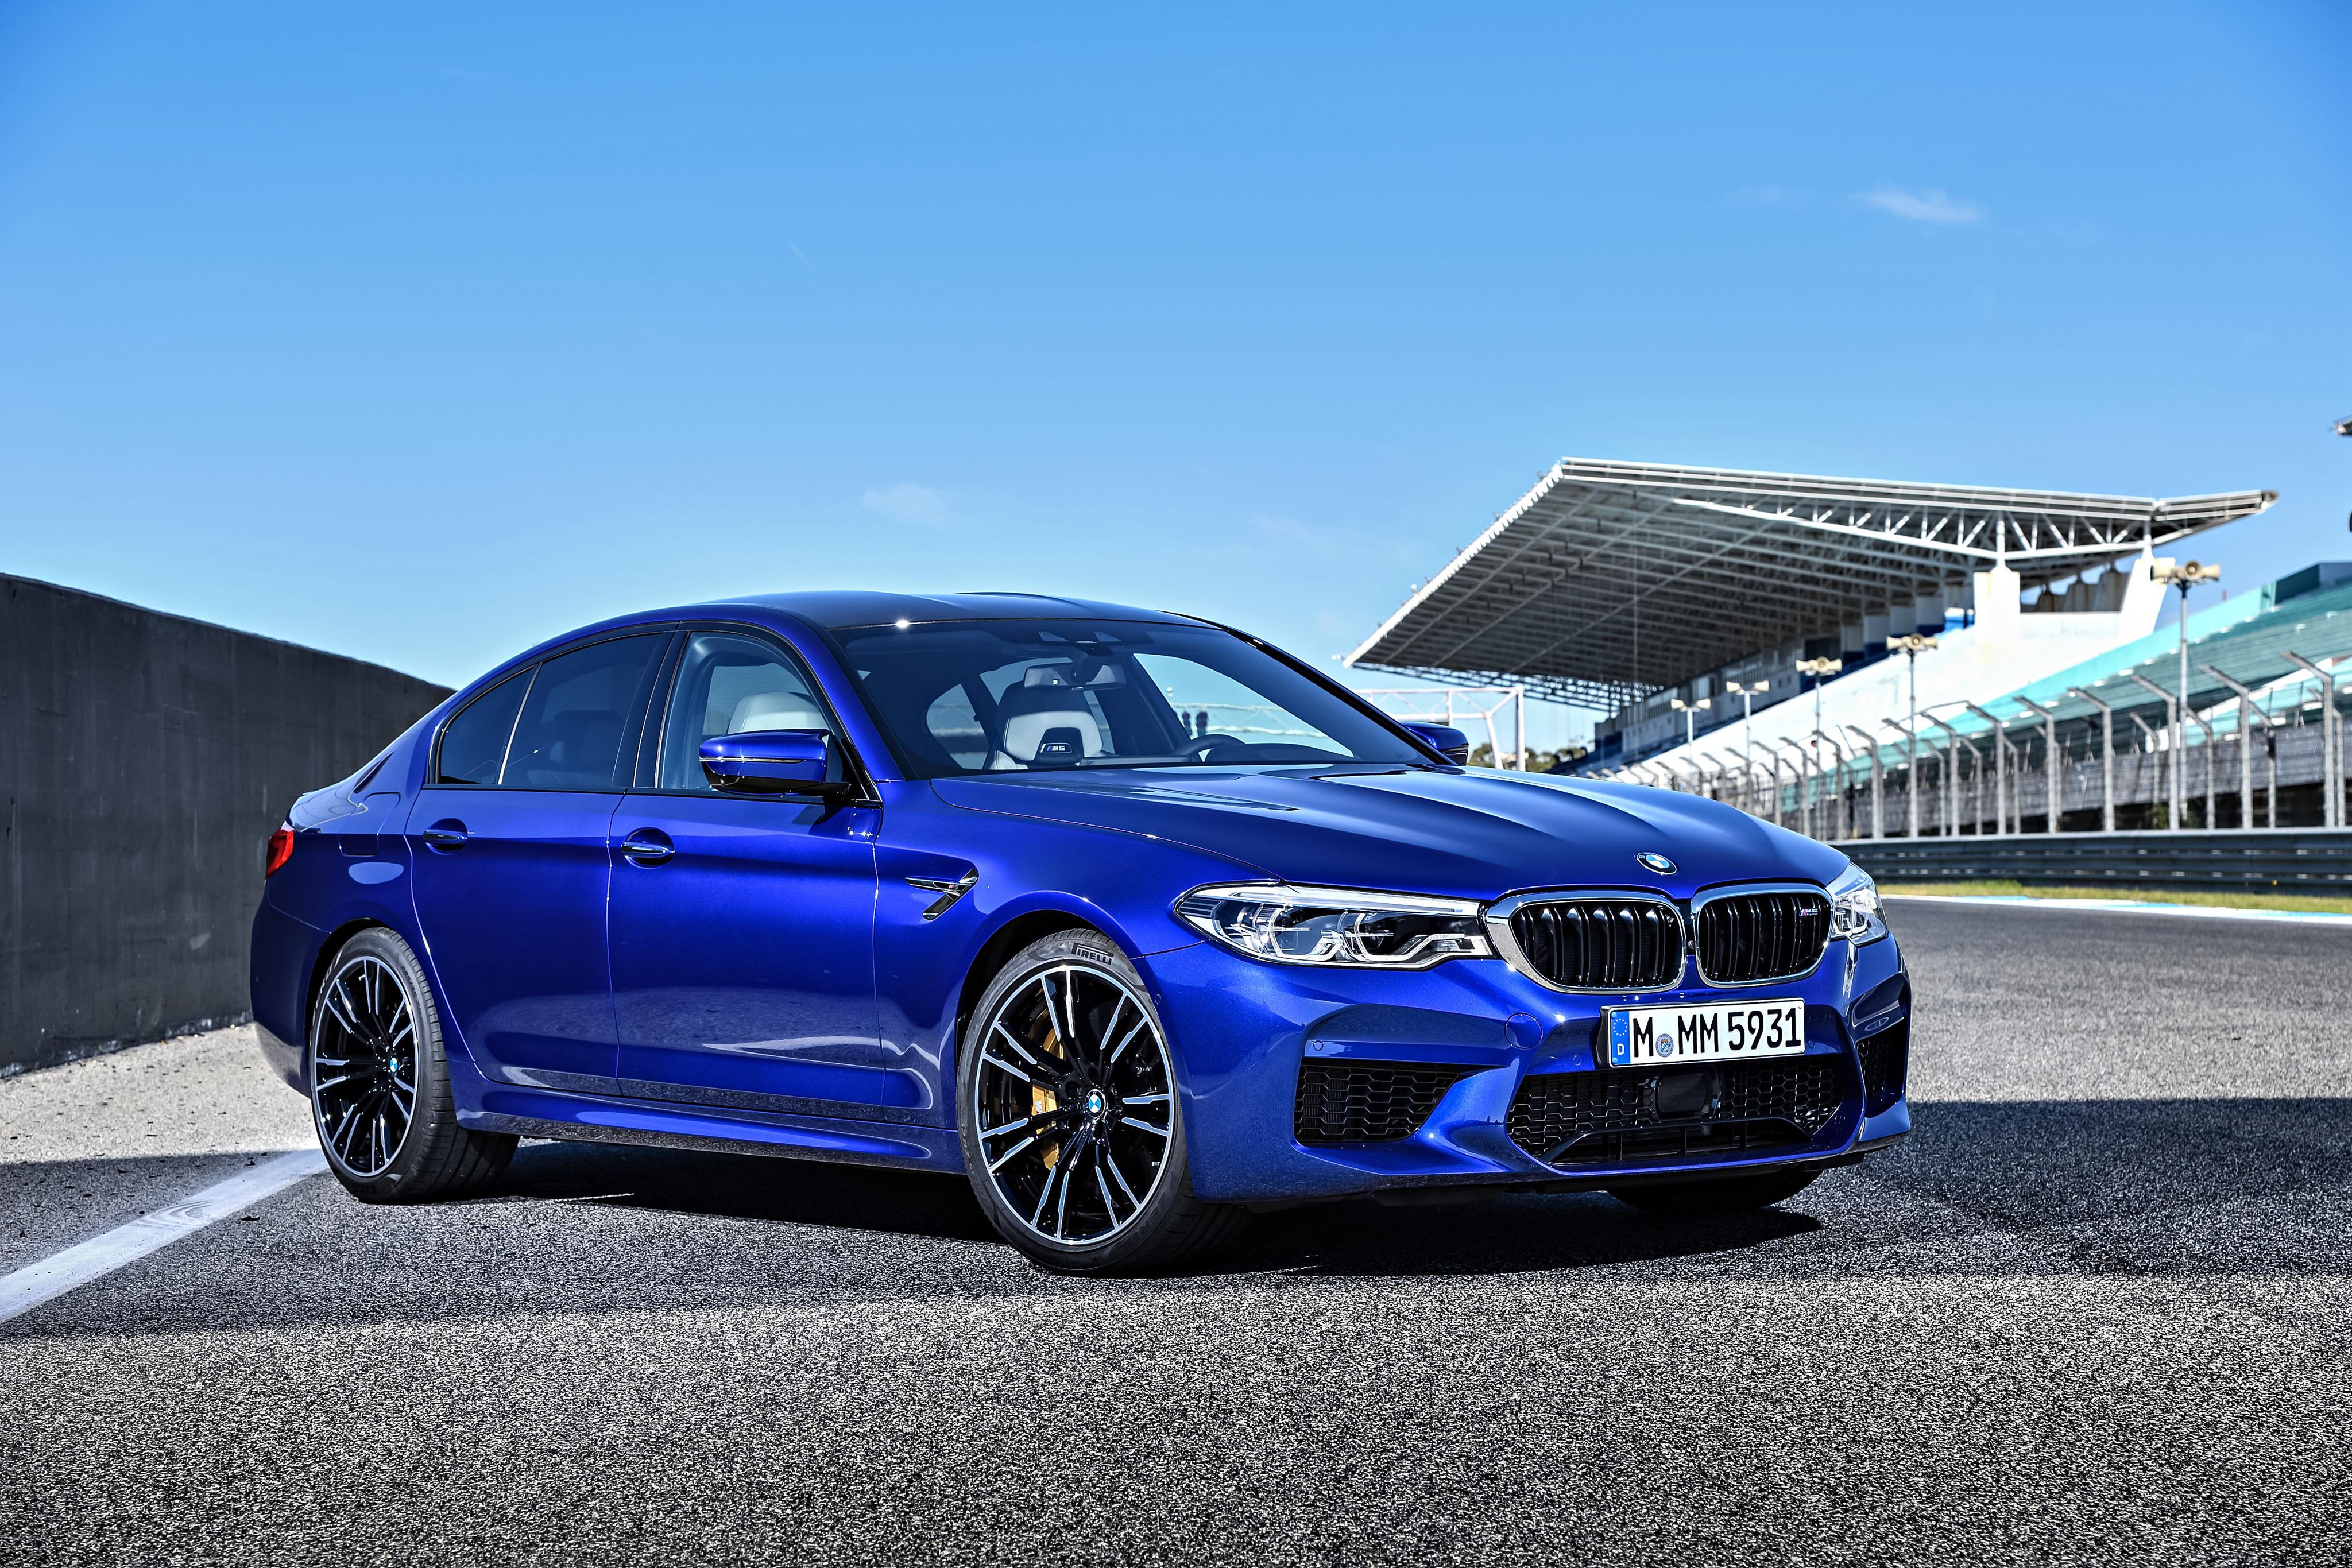 2018 Bmw M5 4k Hd Cars 4k Wallpapers Images Backgrounds Photos And Pictures